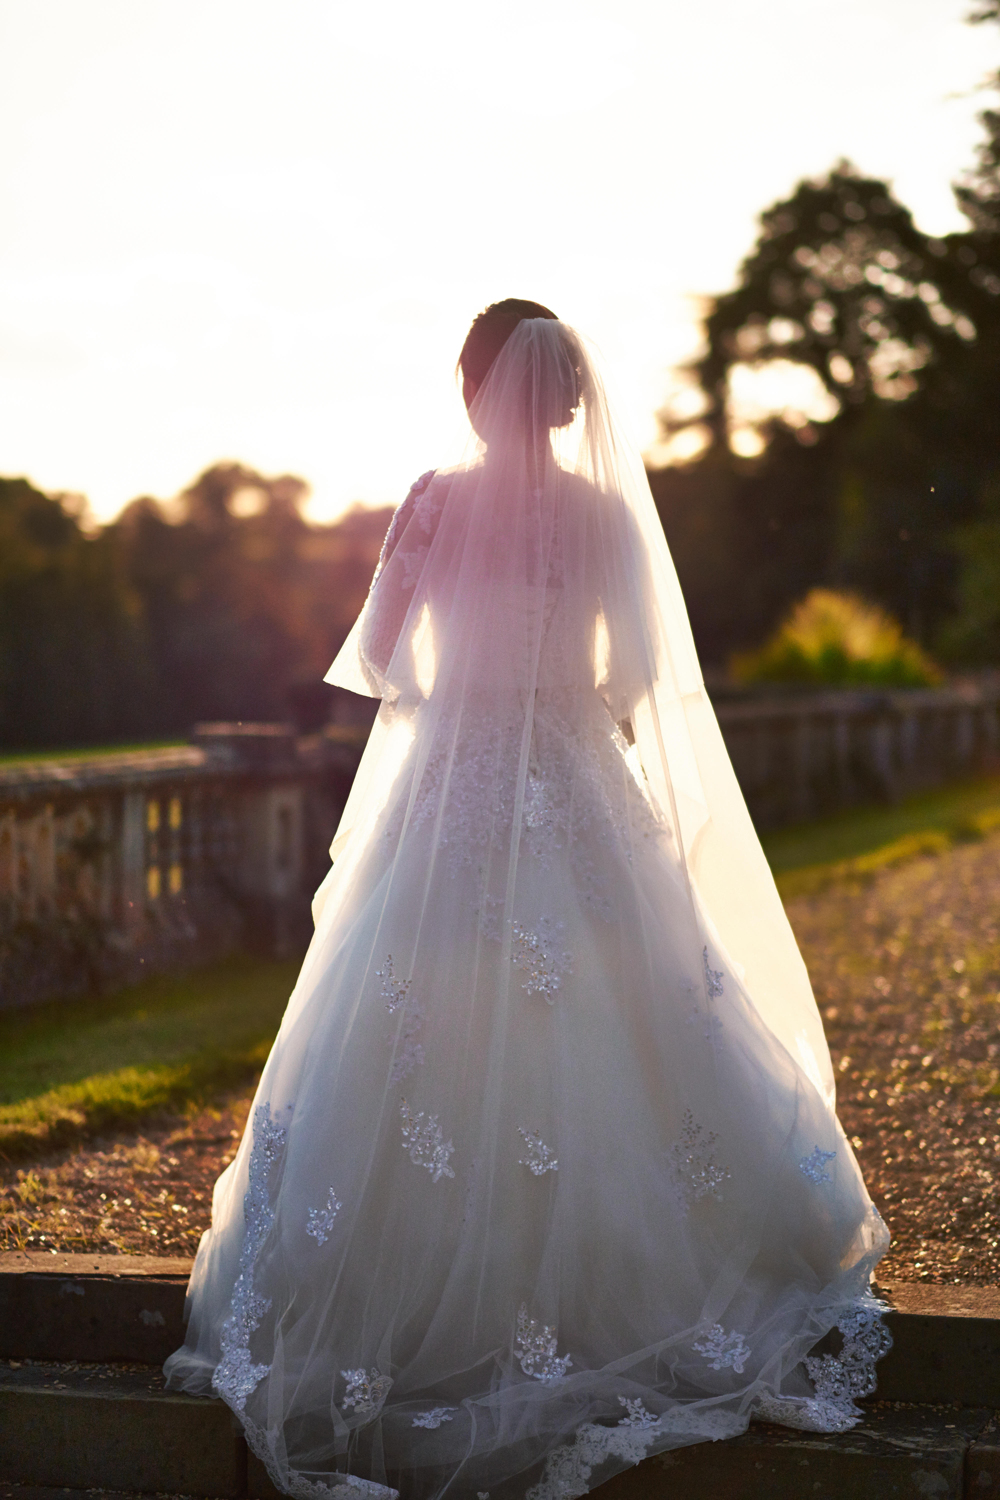 Backlit Bride